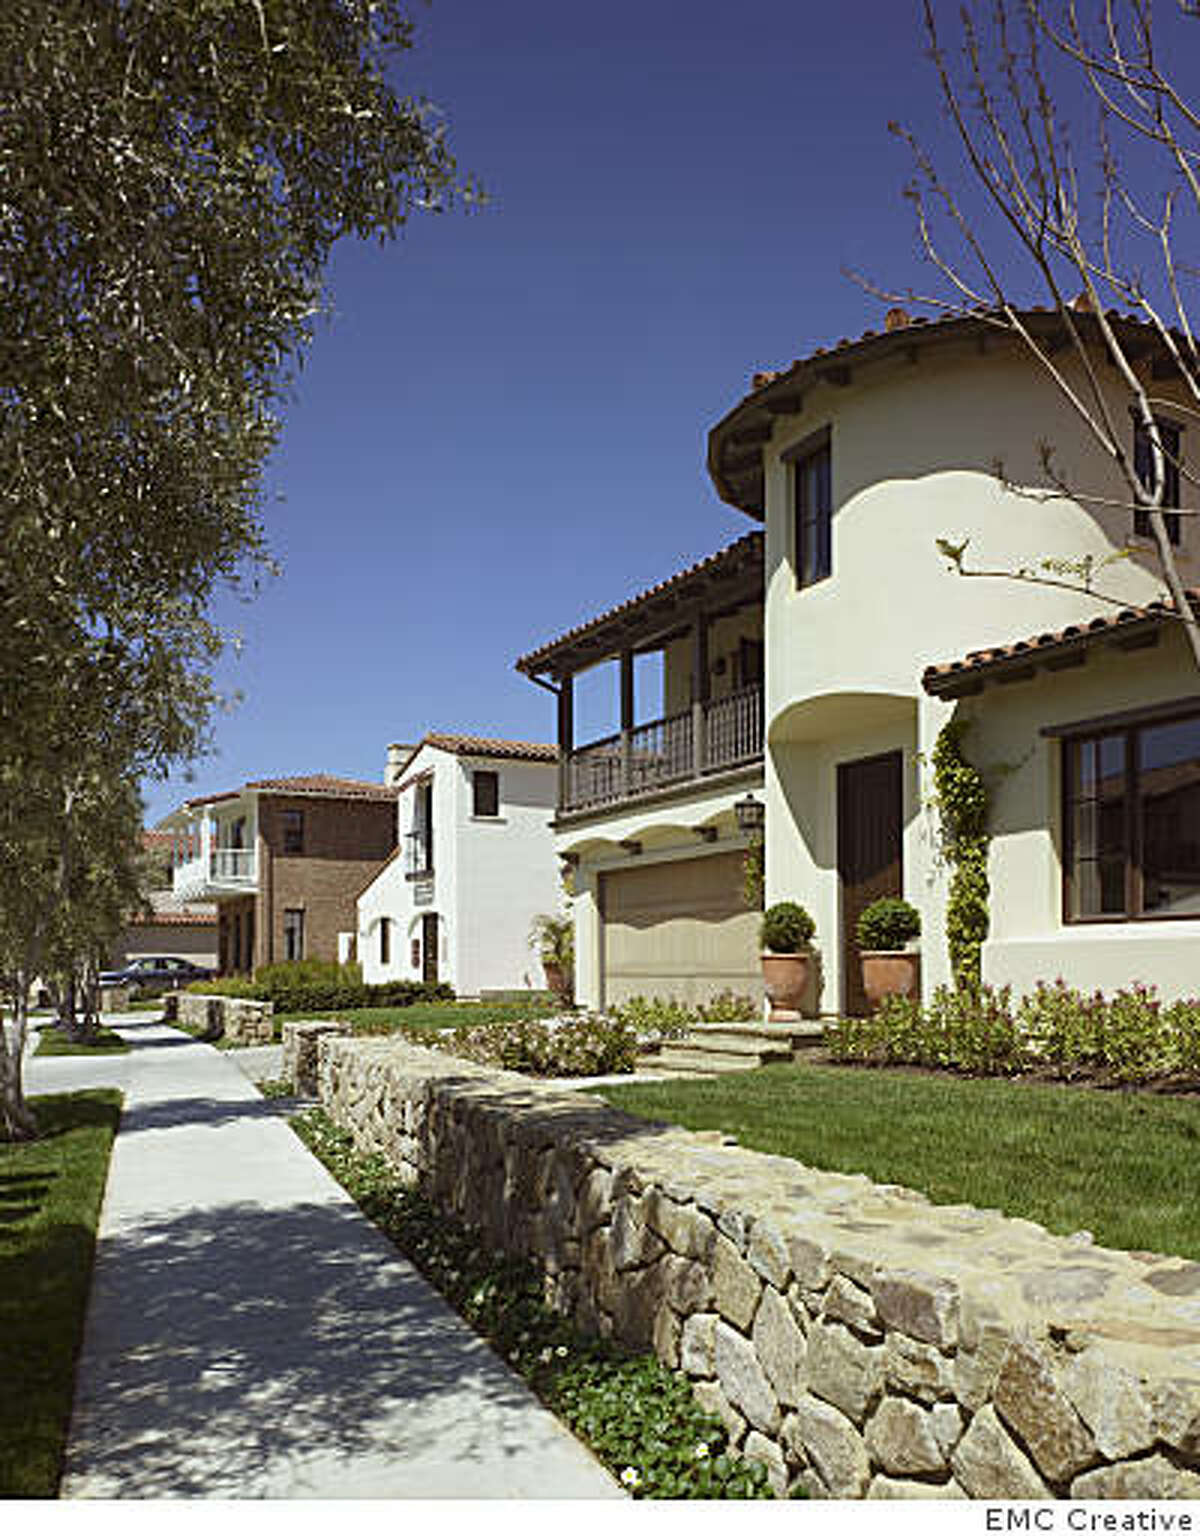 Bella Vista, a 31-home development above Vasona Lake in Los Gatos. This is the Mallorca exterior, which is featured in the story. The houses run from $1 to 2 million.